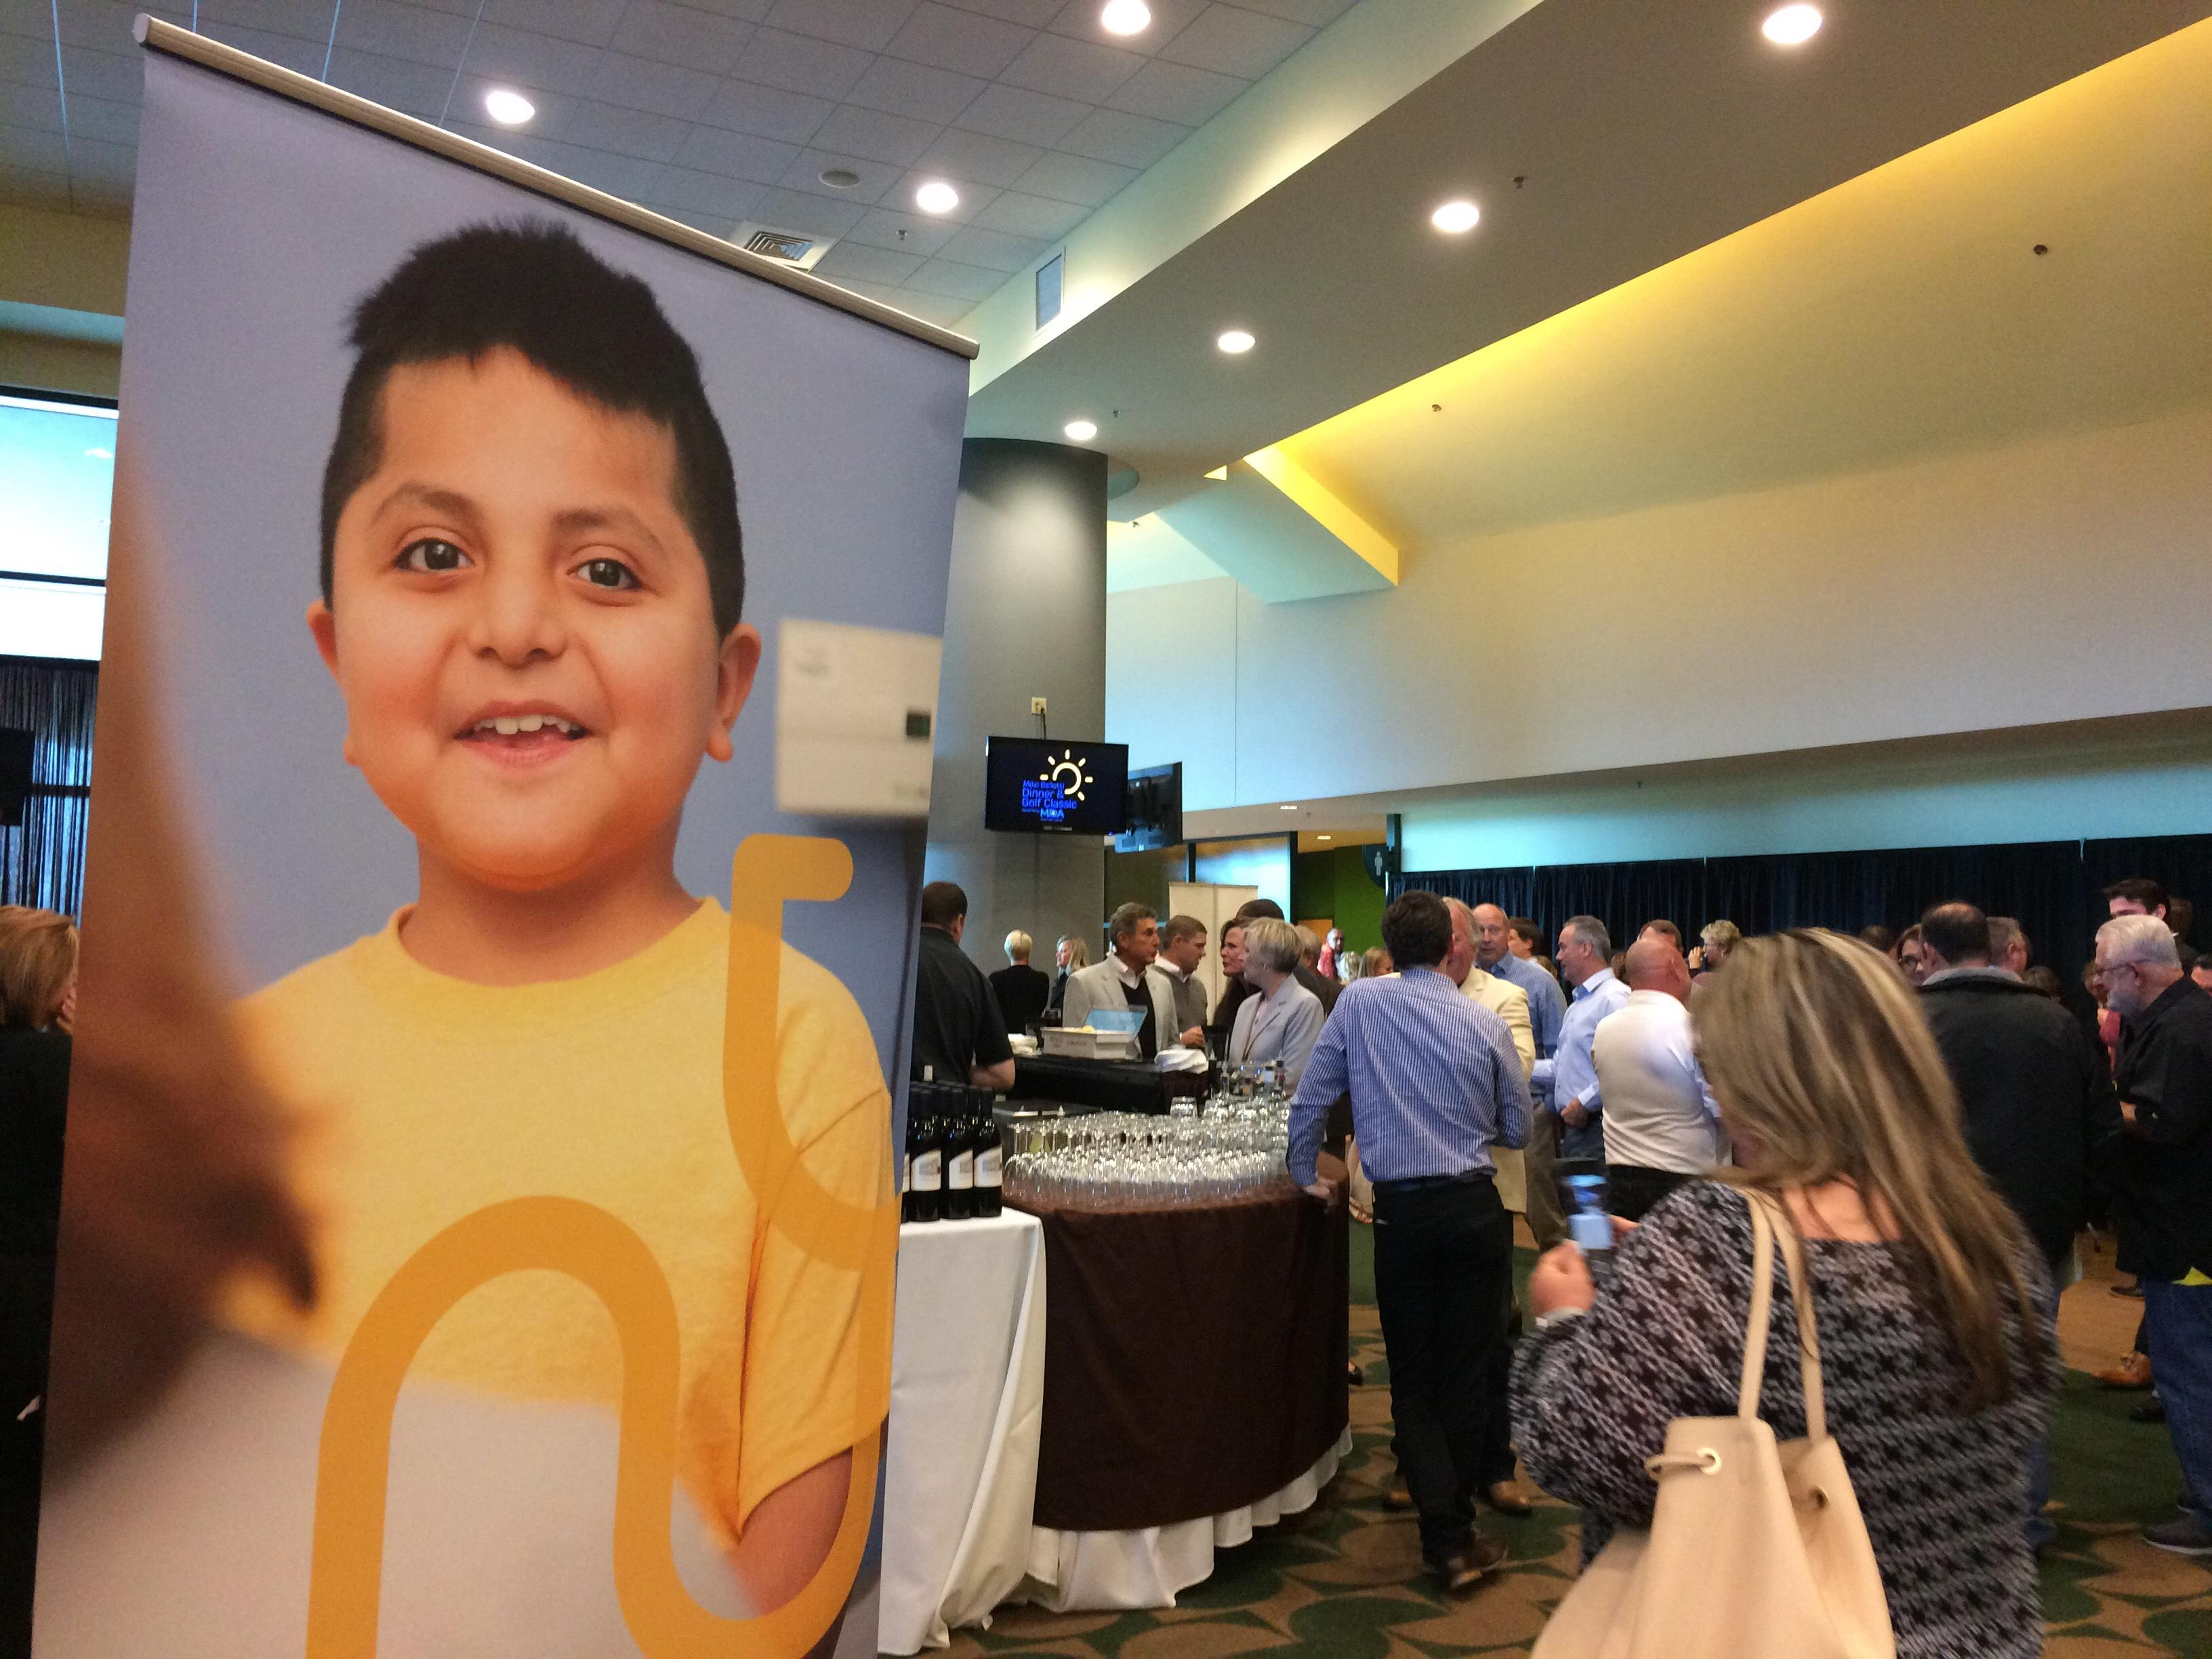 The 24th annual Mike Bellotti Dinner & Golf Classic helps children with muscular dystrophy go to summer camp.  Paying to send 80 kids to the summer camp can cost about $50,000.  The event Thursday raised $80,000. (SBG)